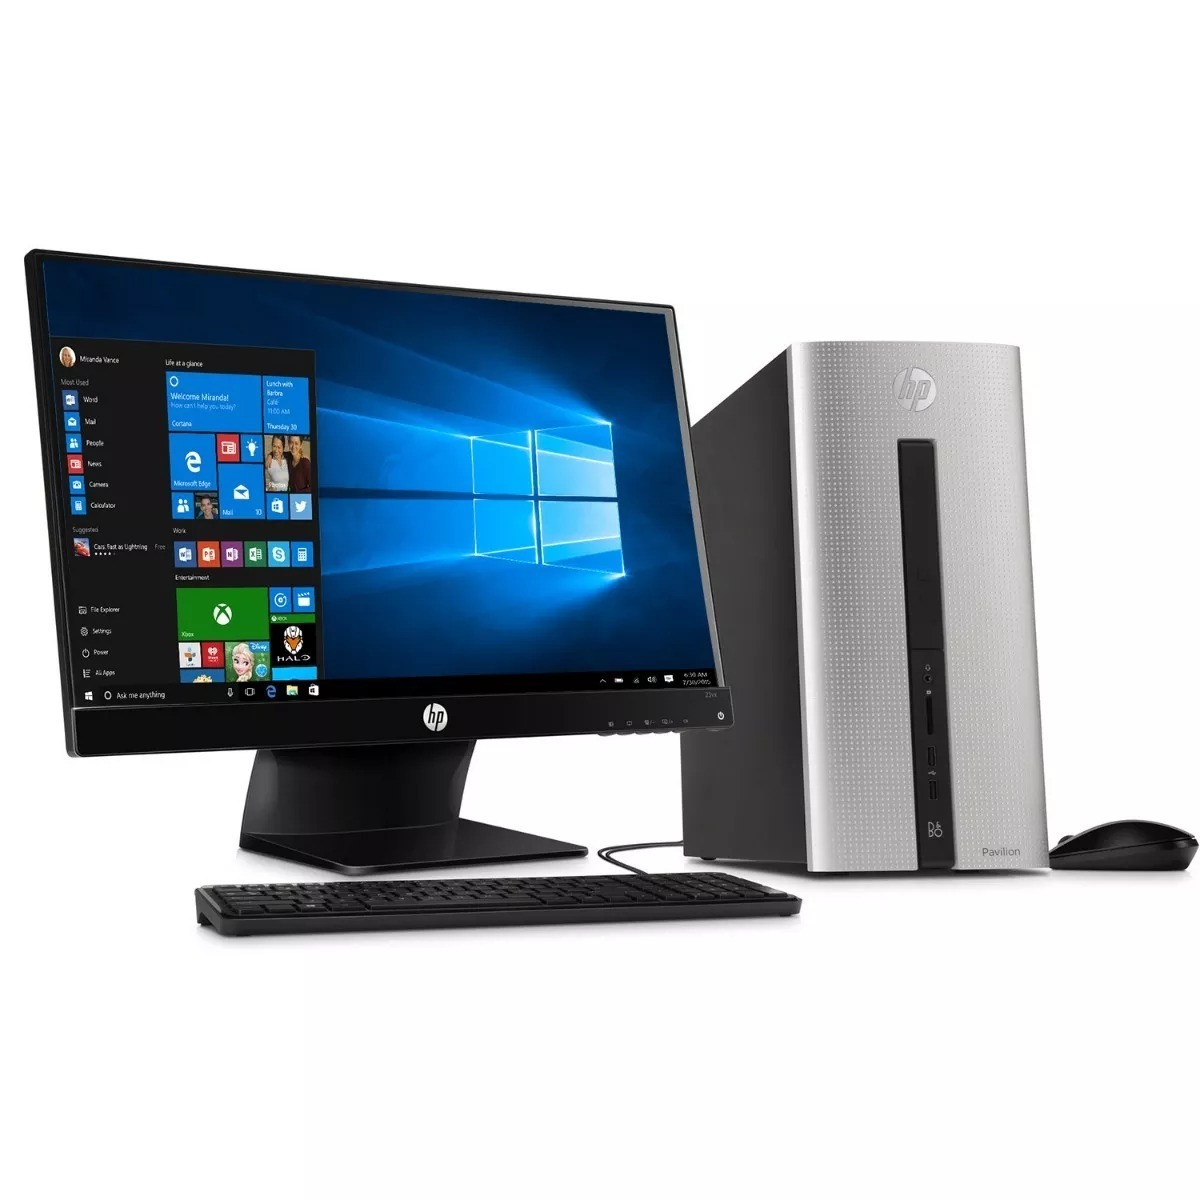 Computador Hp Refurbished (clase A) Proone 400 G2 All-in-one